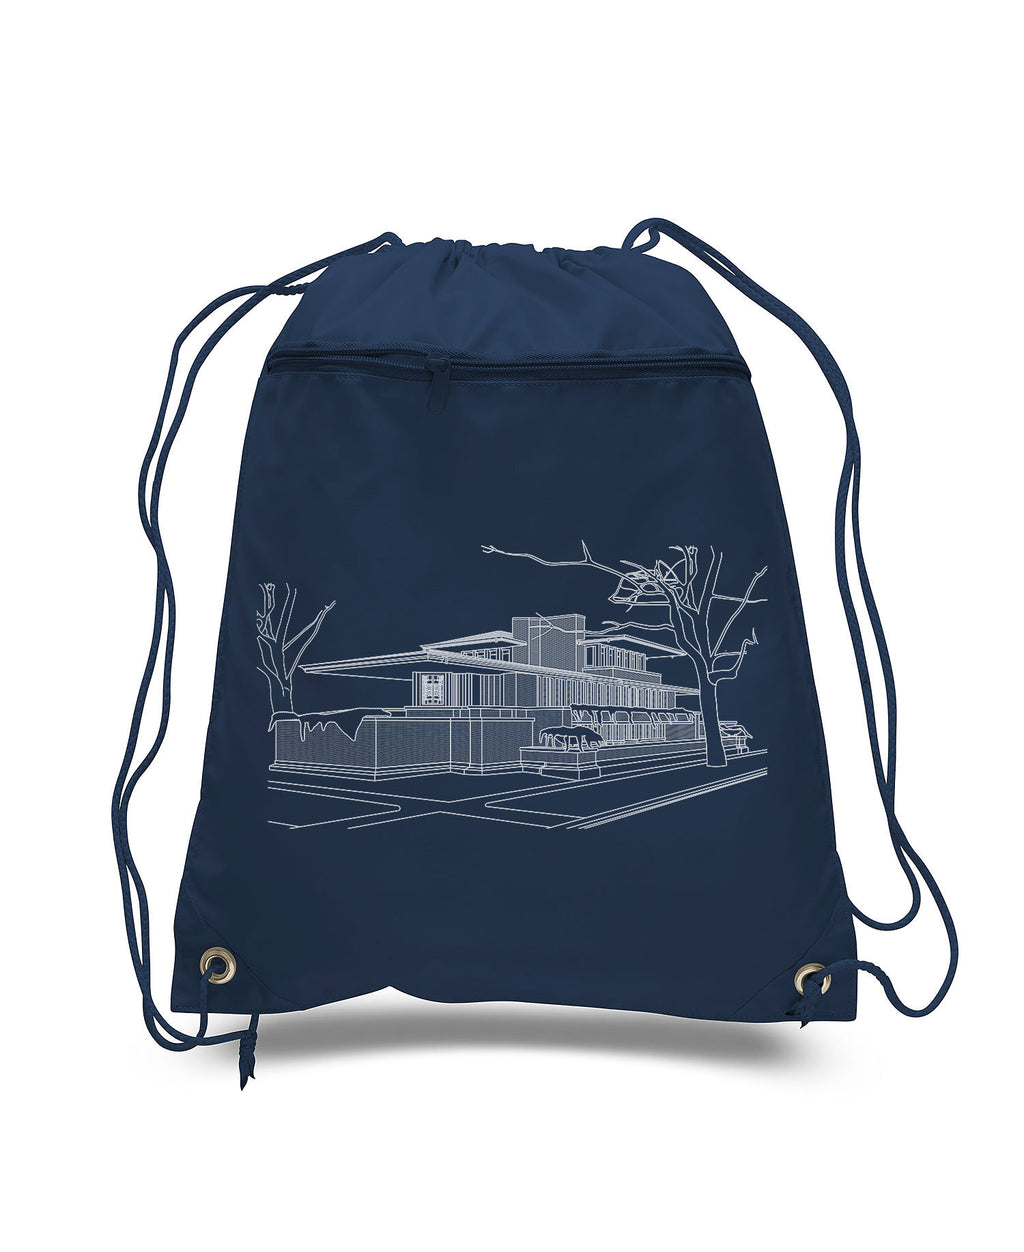 Robie House Drawstring Backpack